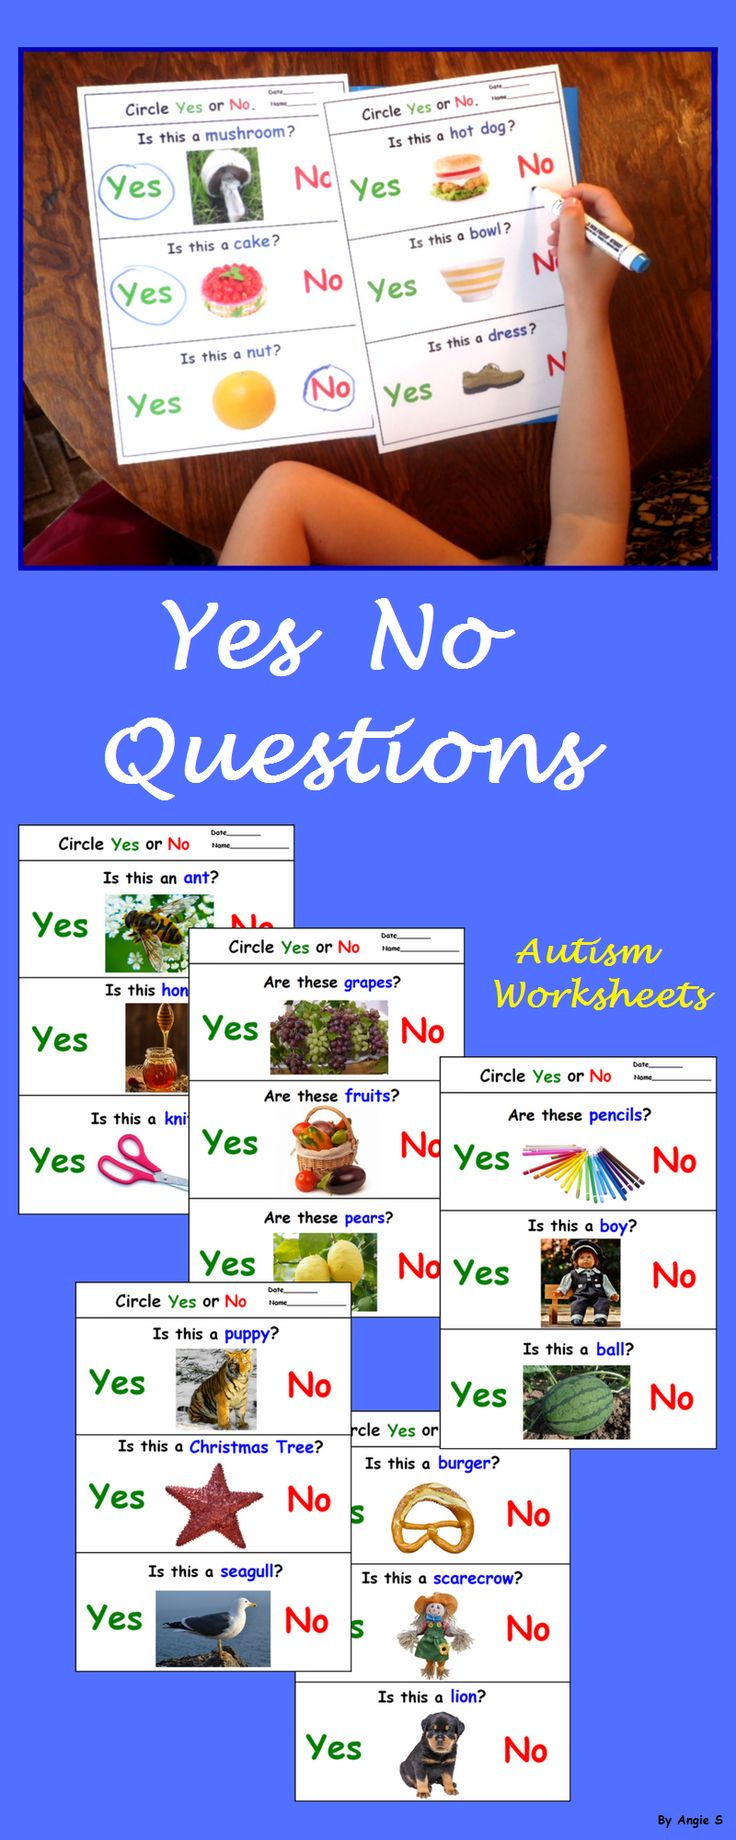 Yes No Questions Autism Worksheets for Speech Therapy, a great activity to target basic yes no questions, good for students with autism and special needs. Asking and answering questions are very important for teaching preschool and kindergarten students. #autism #yesnoquestion #esl #autismresources #tpt For more special ed resources follow https://www.pinterest.com/angelajuvic/autism-special-education-resources-angie-s-tpt-sto/